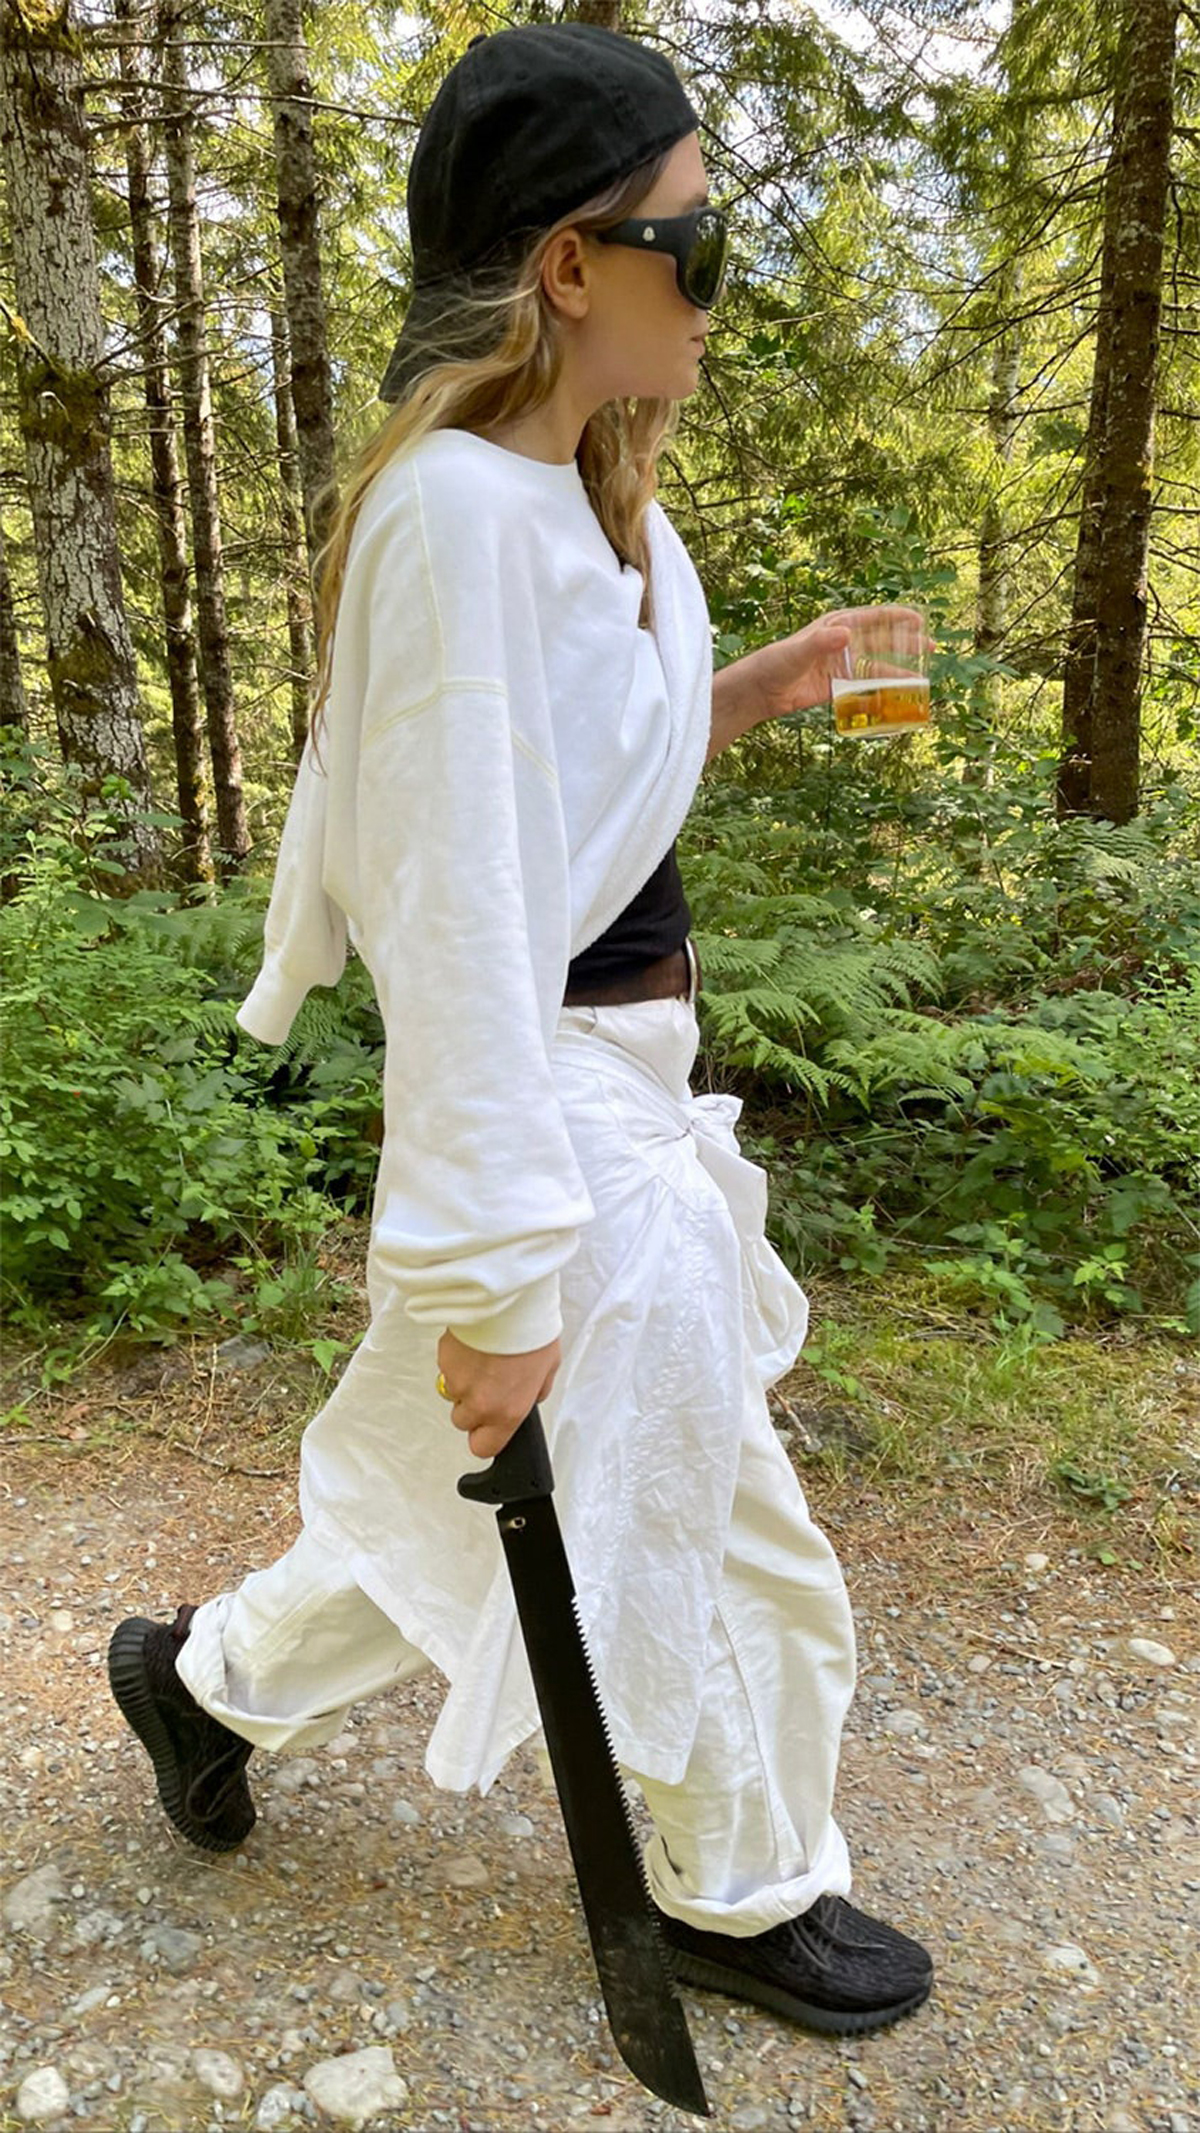 Ashley Olsen Carries Giant Machete On A Hike In Rare Picture From Her Boyfriend Louis Eisner